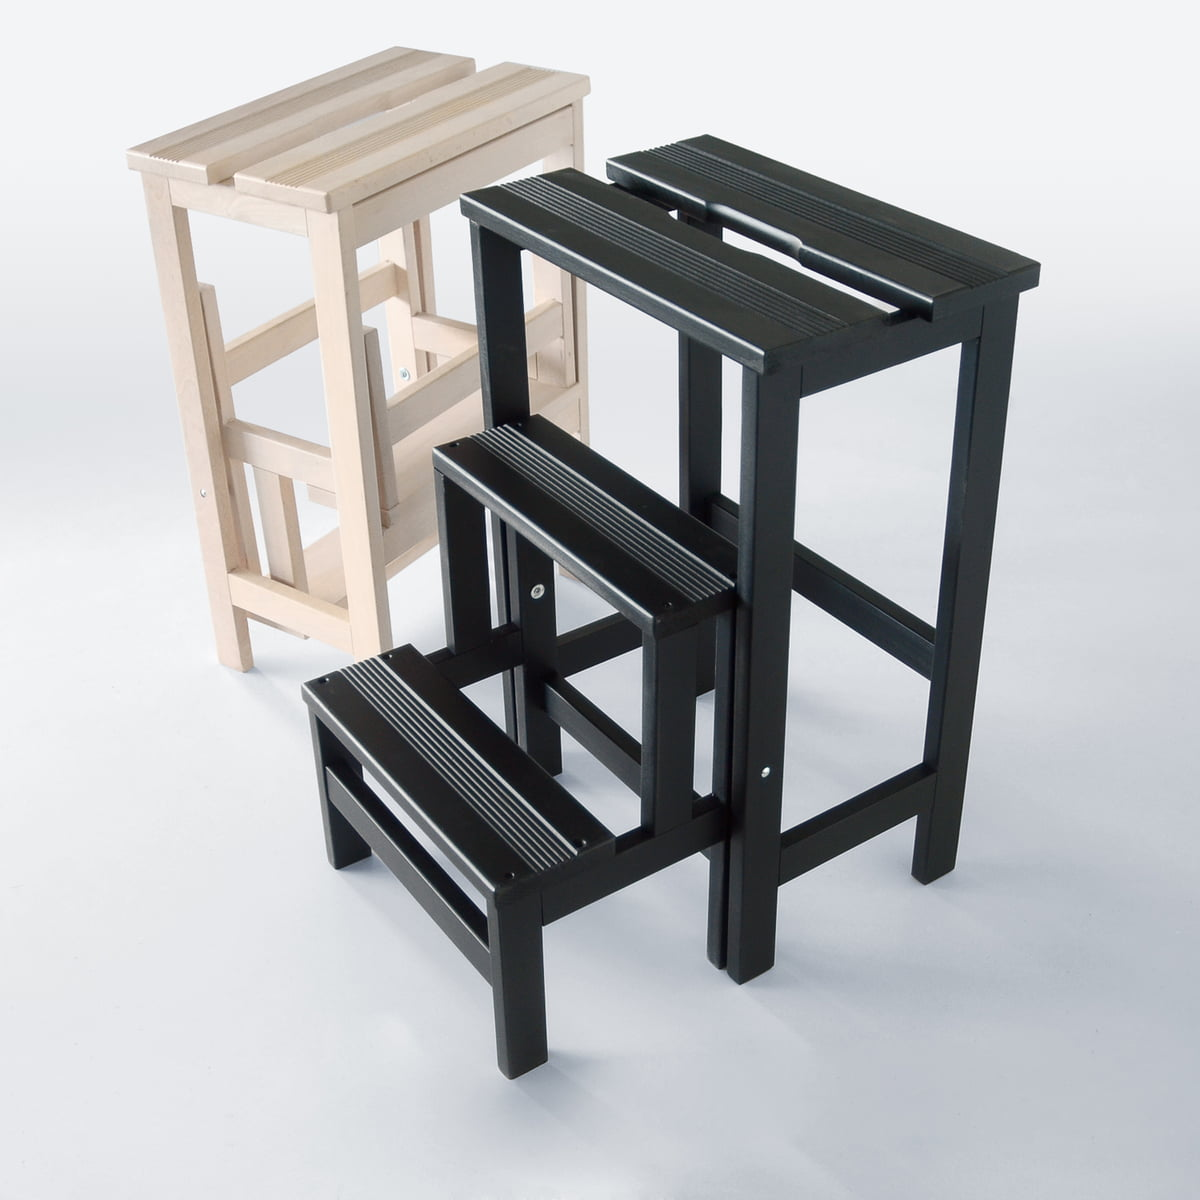 hardware step stool ace two steel at family index kitchen jsp big and stools folding